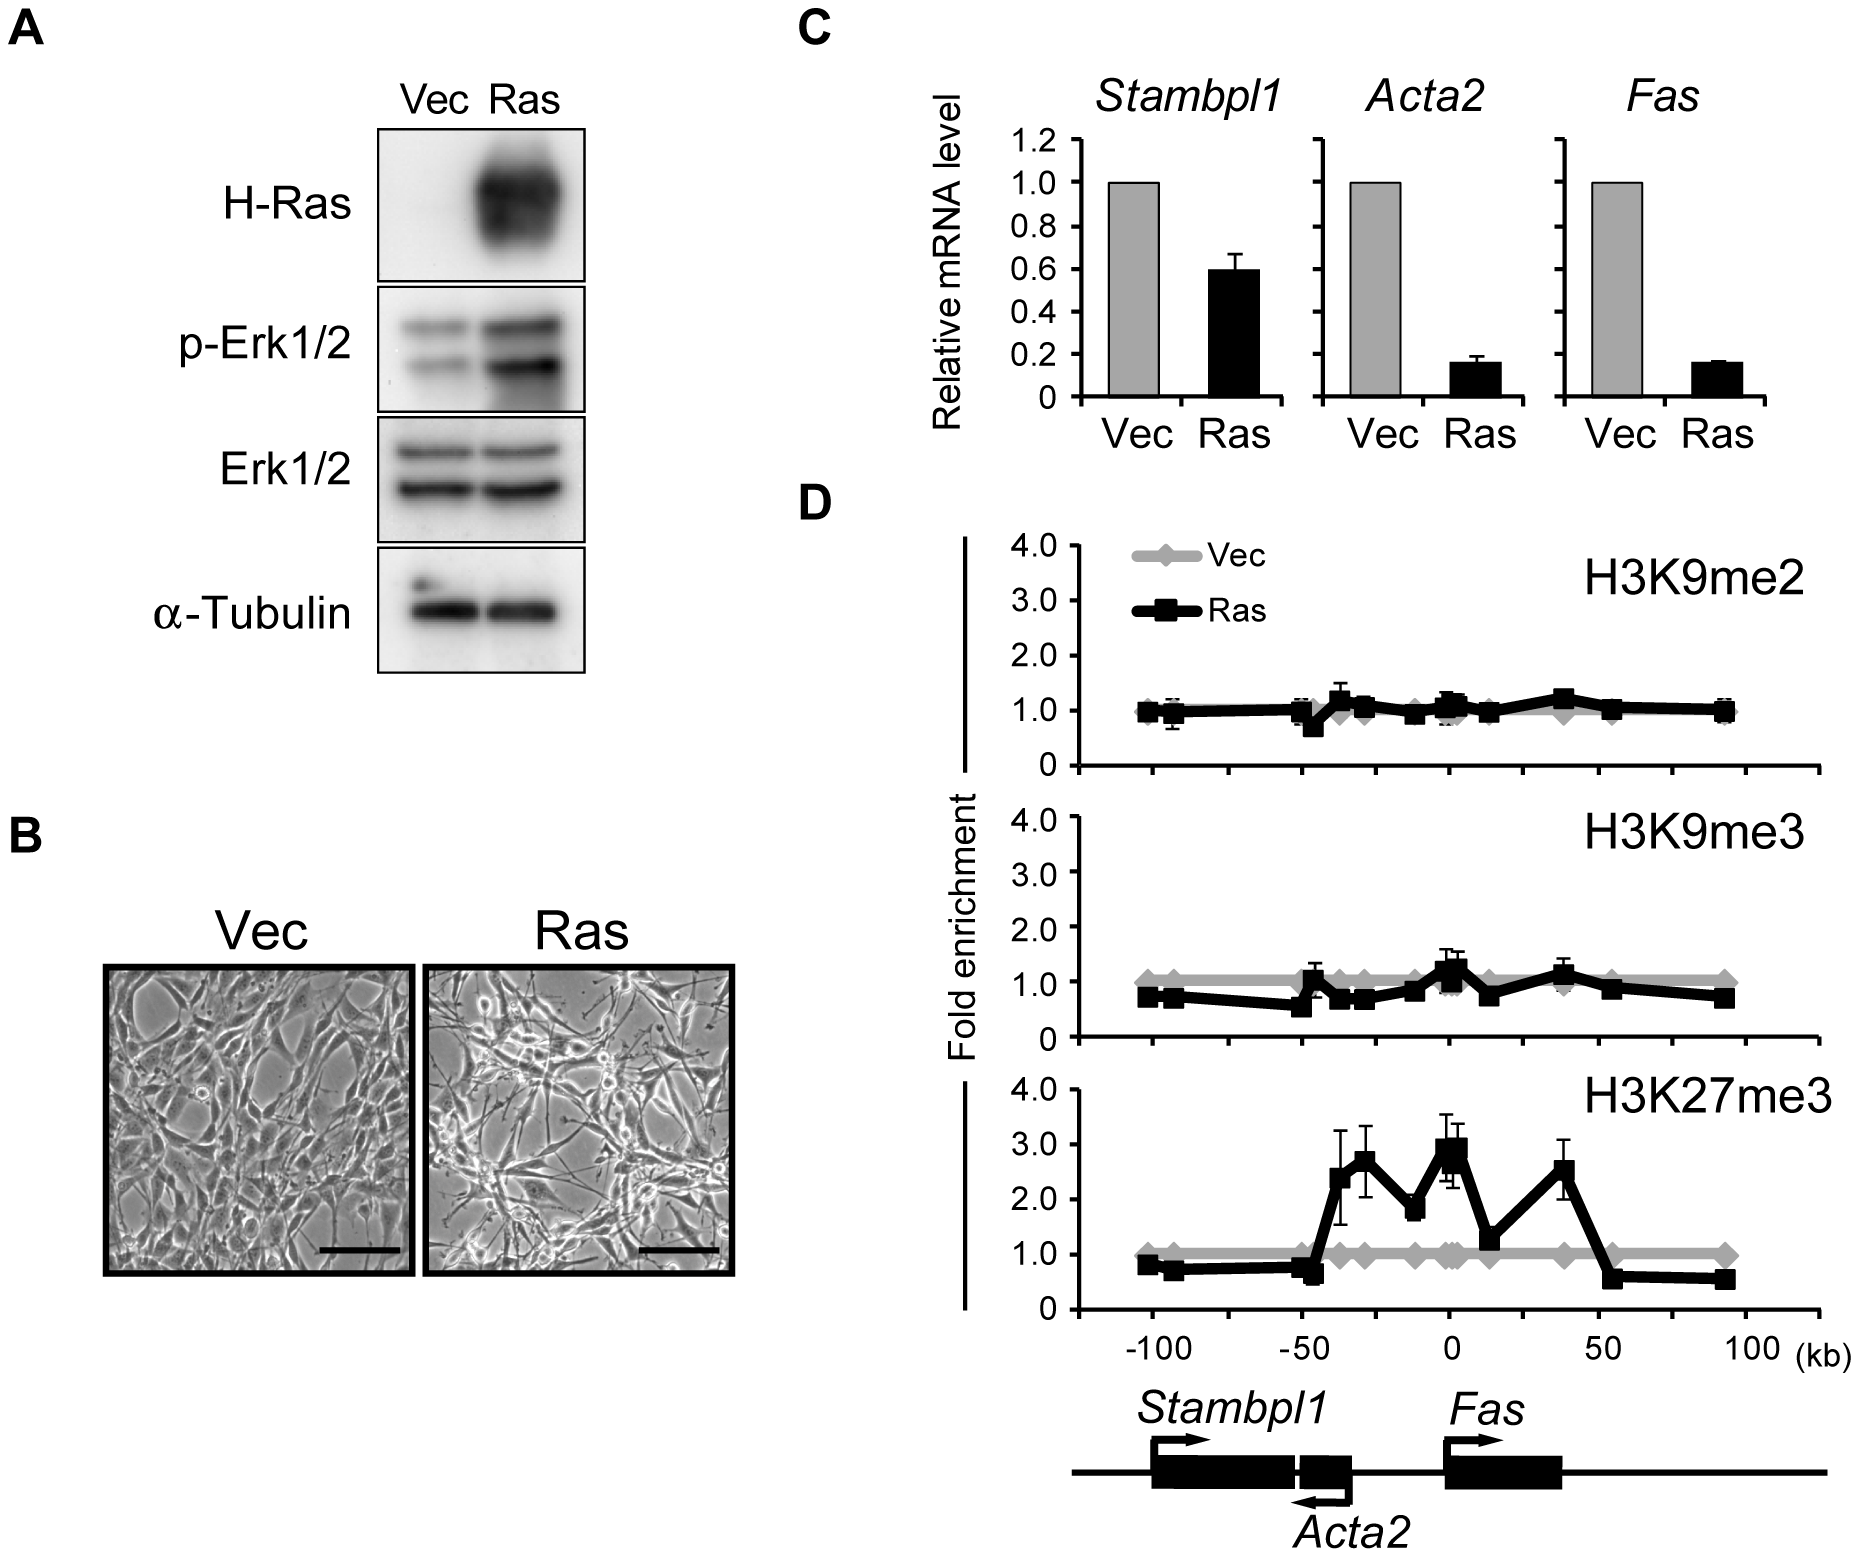 Activation of Ras signaling increases H3K27me3 abundance at the <i>Fas</i> locus in NIH 3T3 cells.